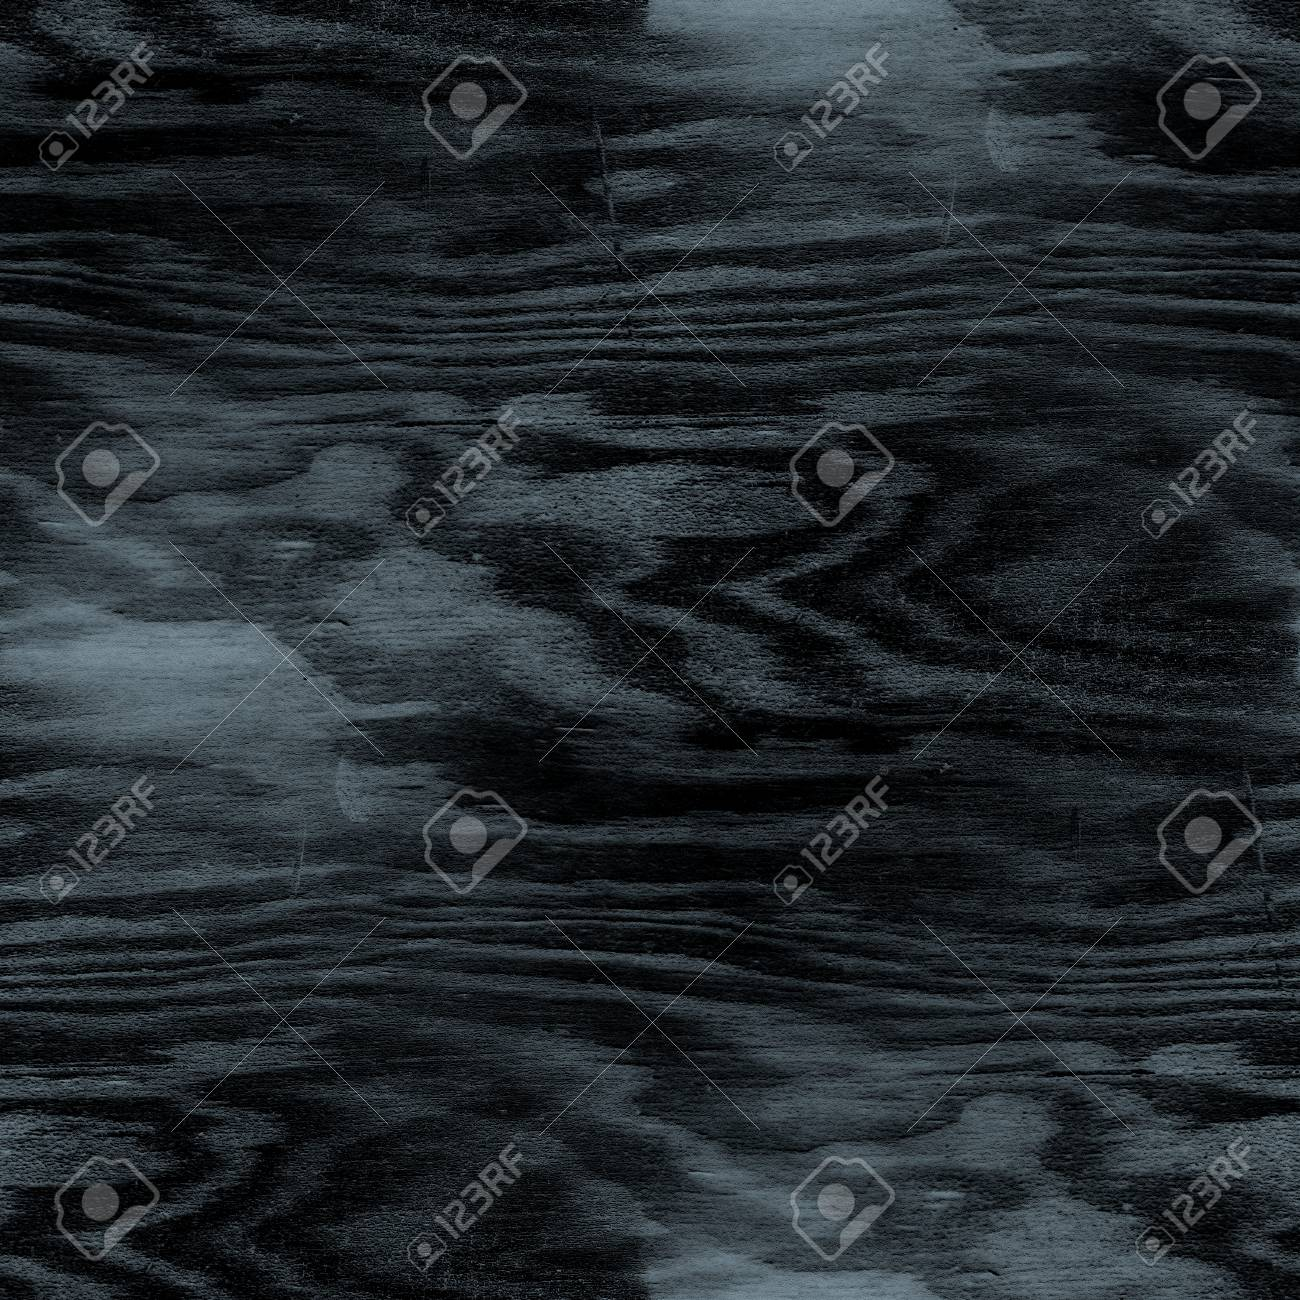 Abstract Black Wooden Texture Seamless Stock Photo Picture And